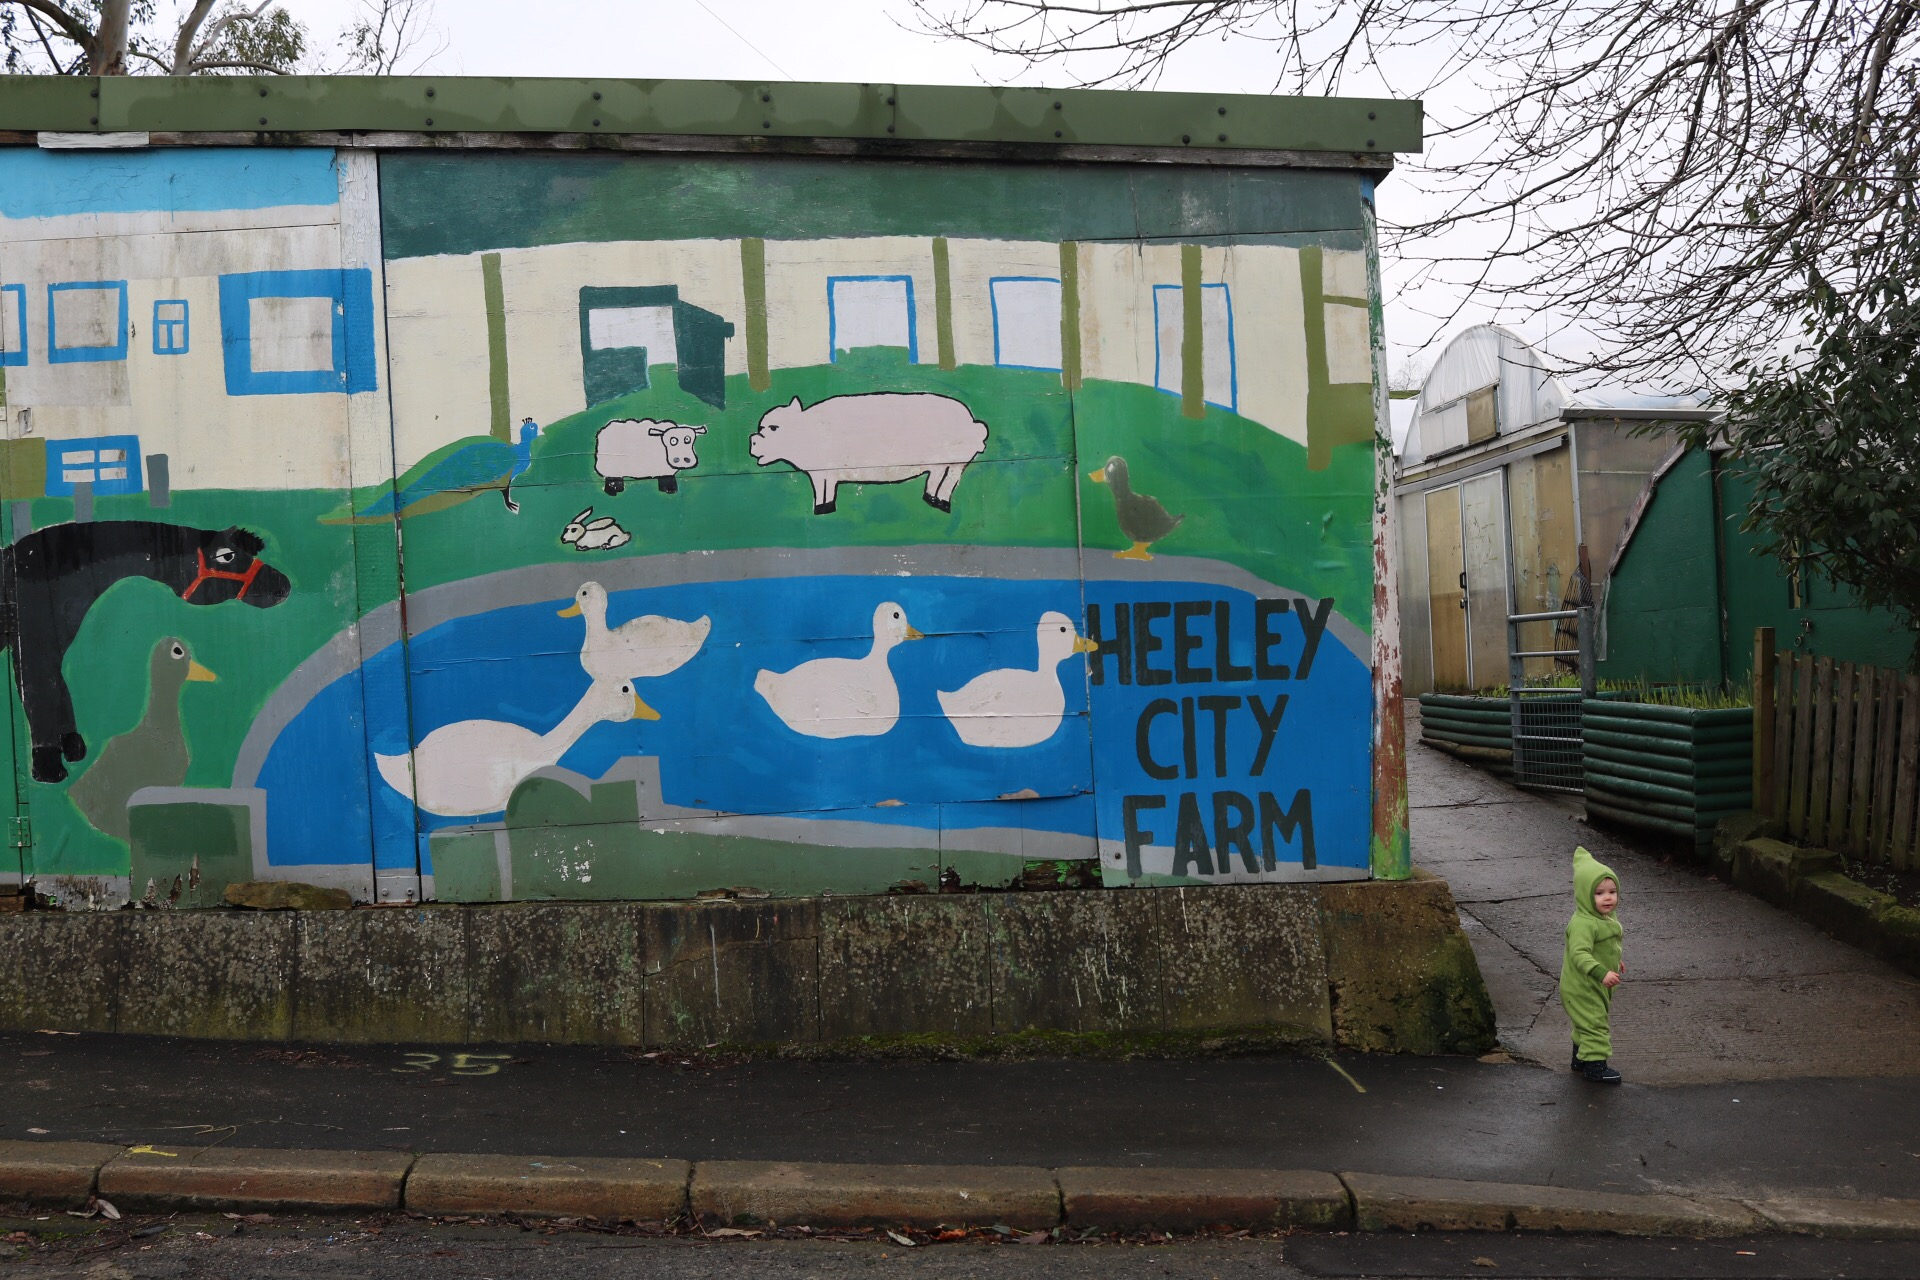 Heeley city farm Things to do in Sheffield with a toddler